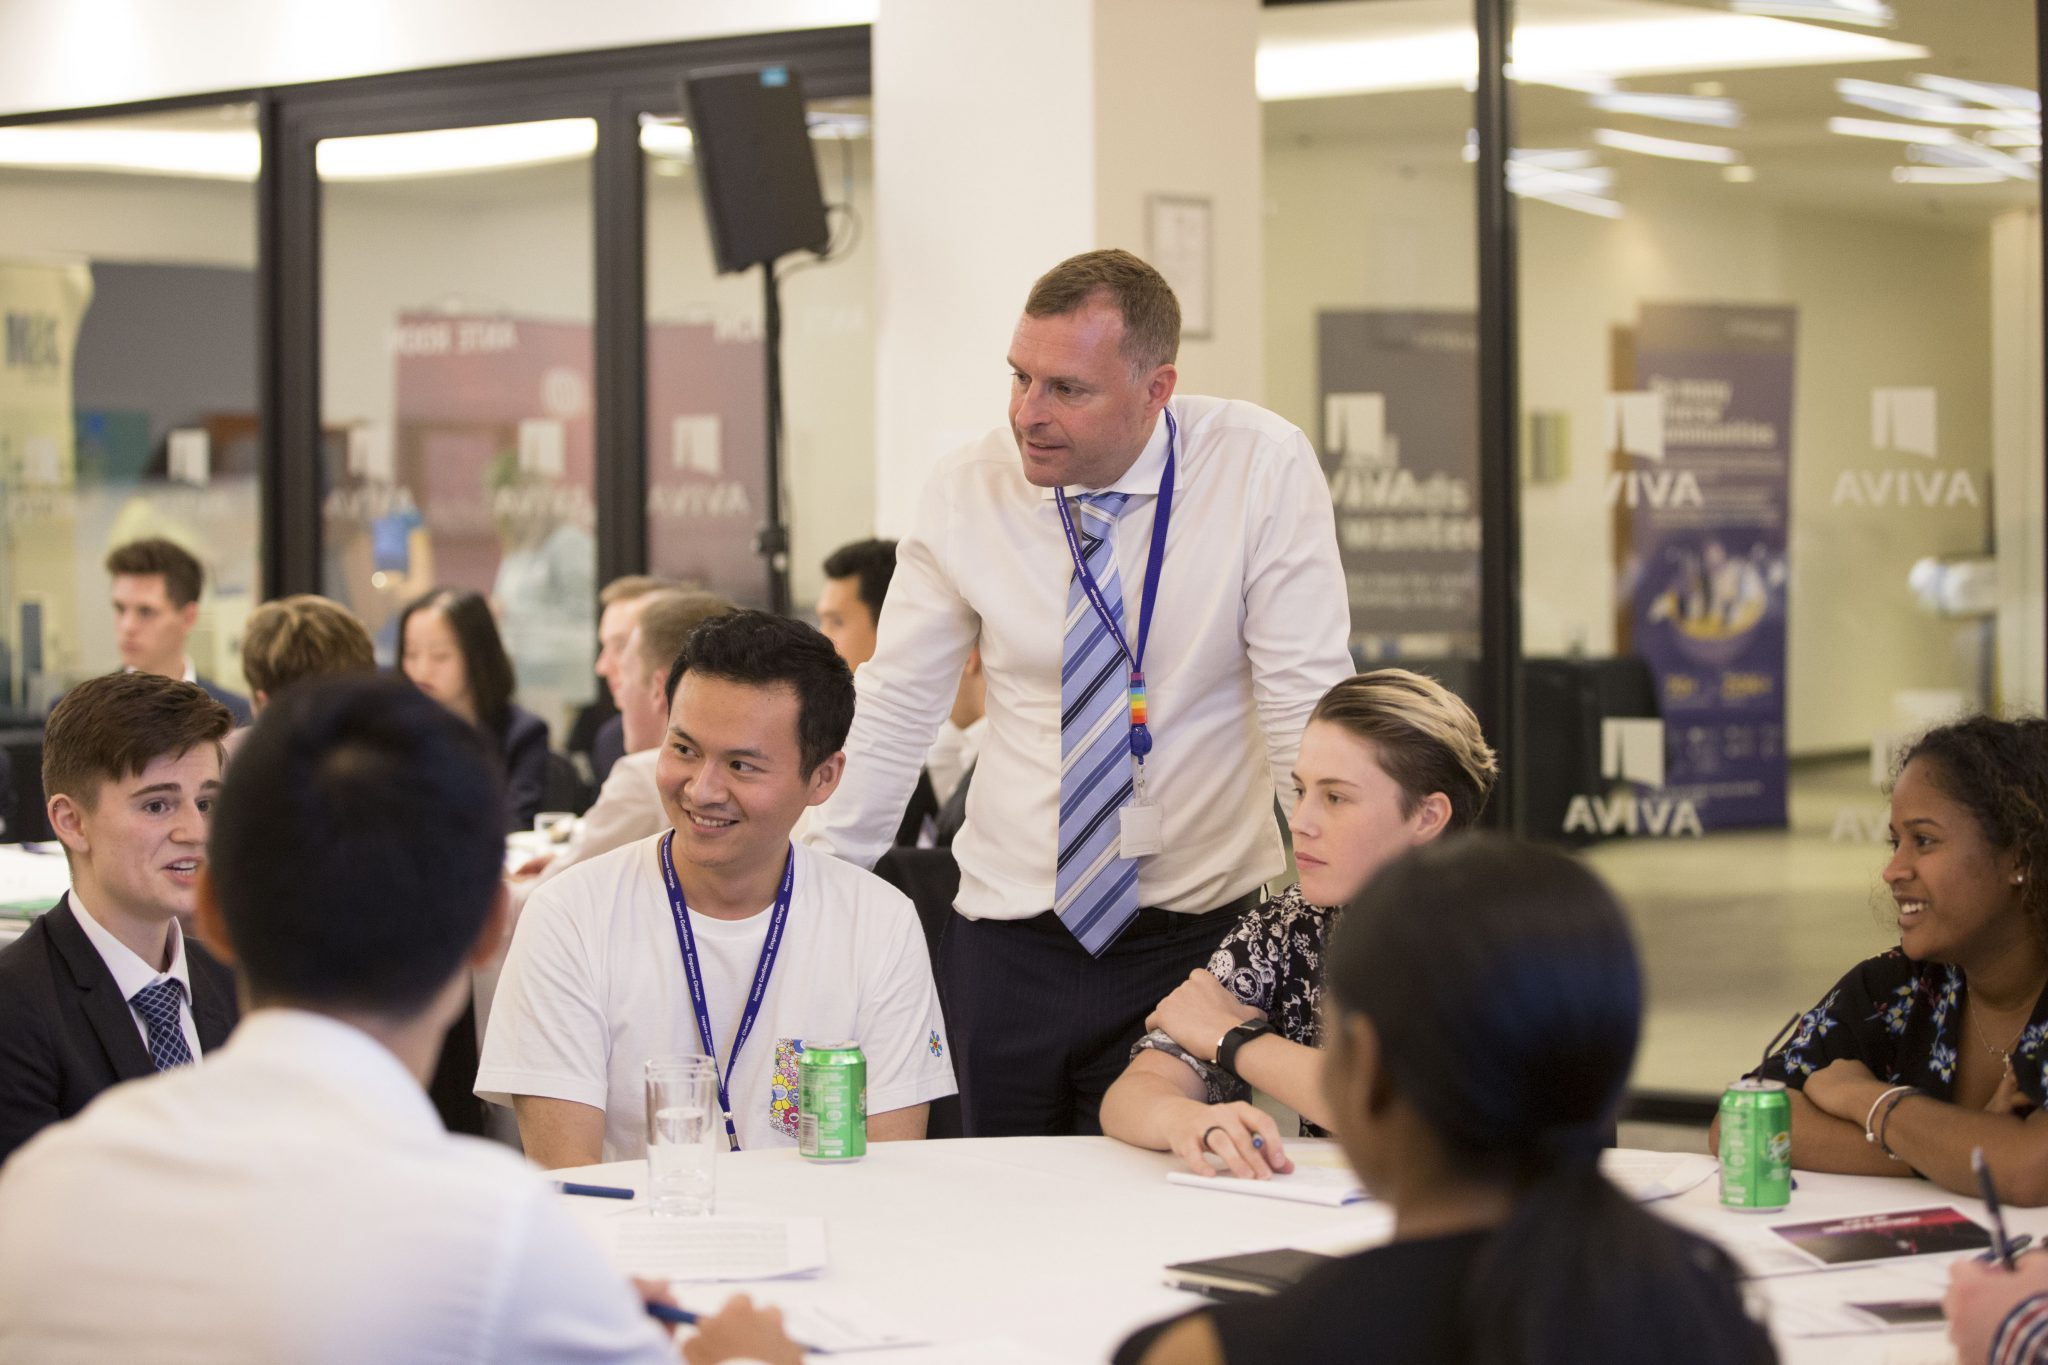 Group of students sitting together with an event organiser joining them in conversation during an AuthentiCity event